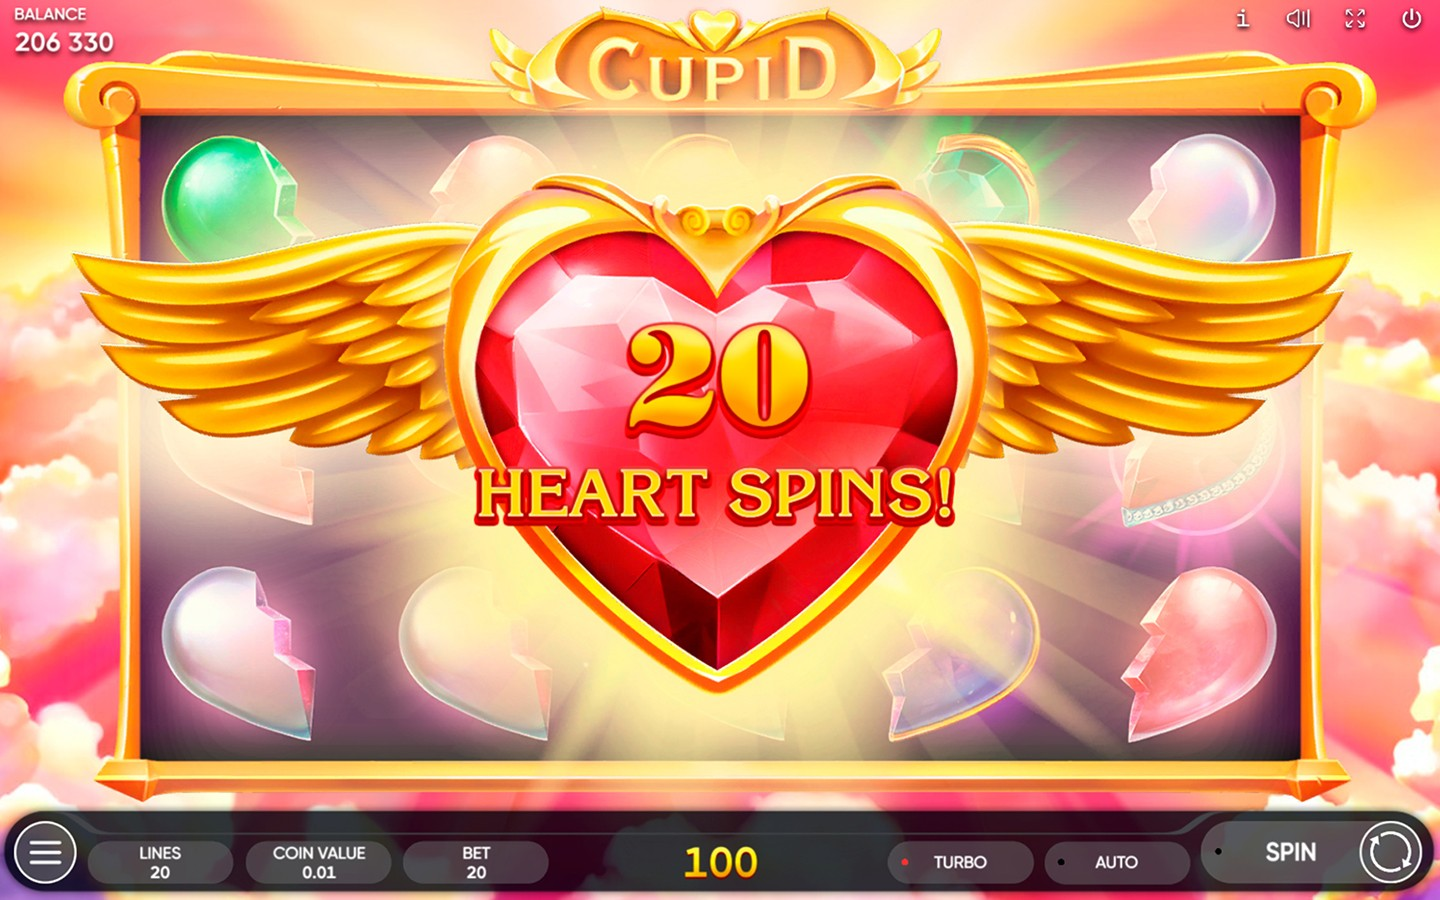 CASINO GAME DEVELOPERS | Play Cupid slot now!